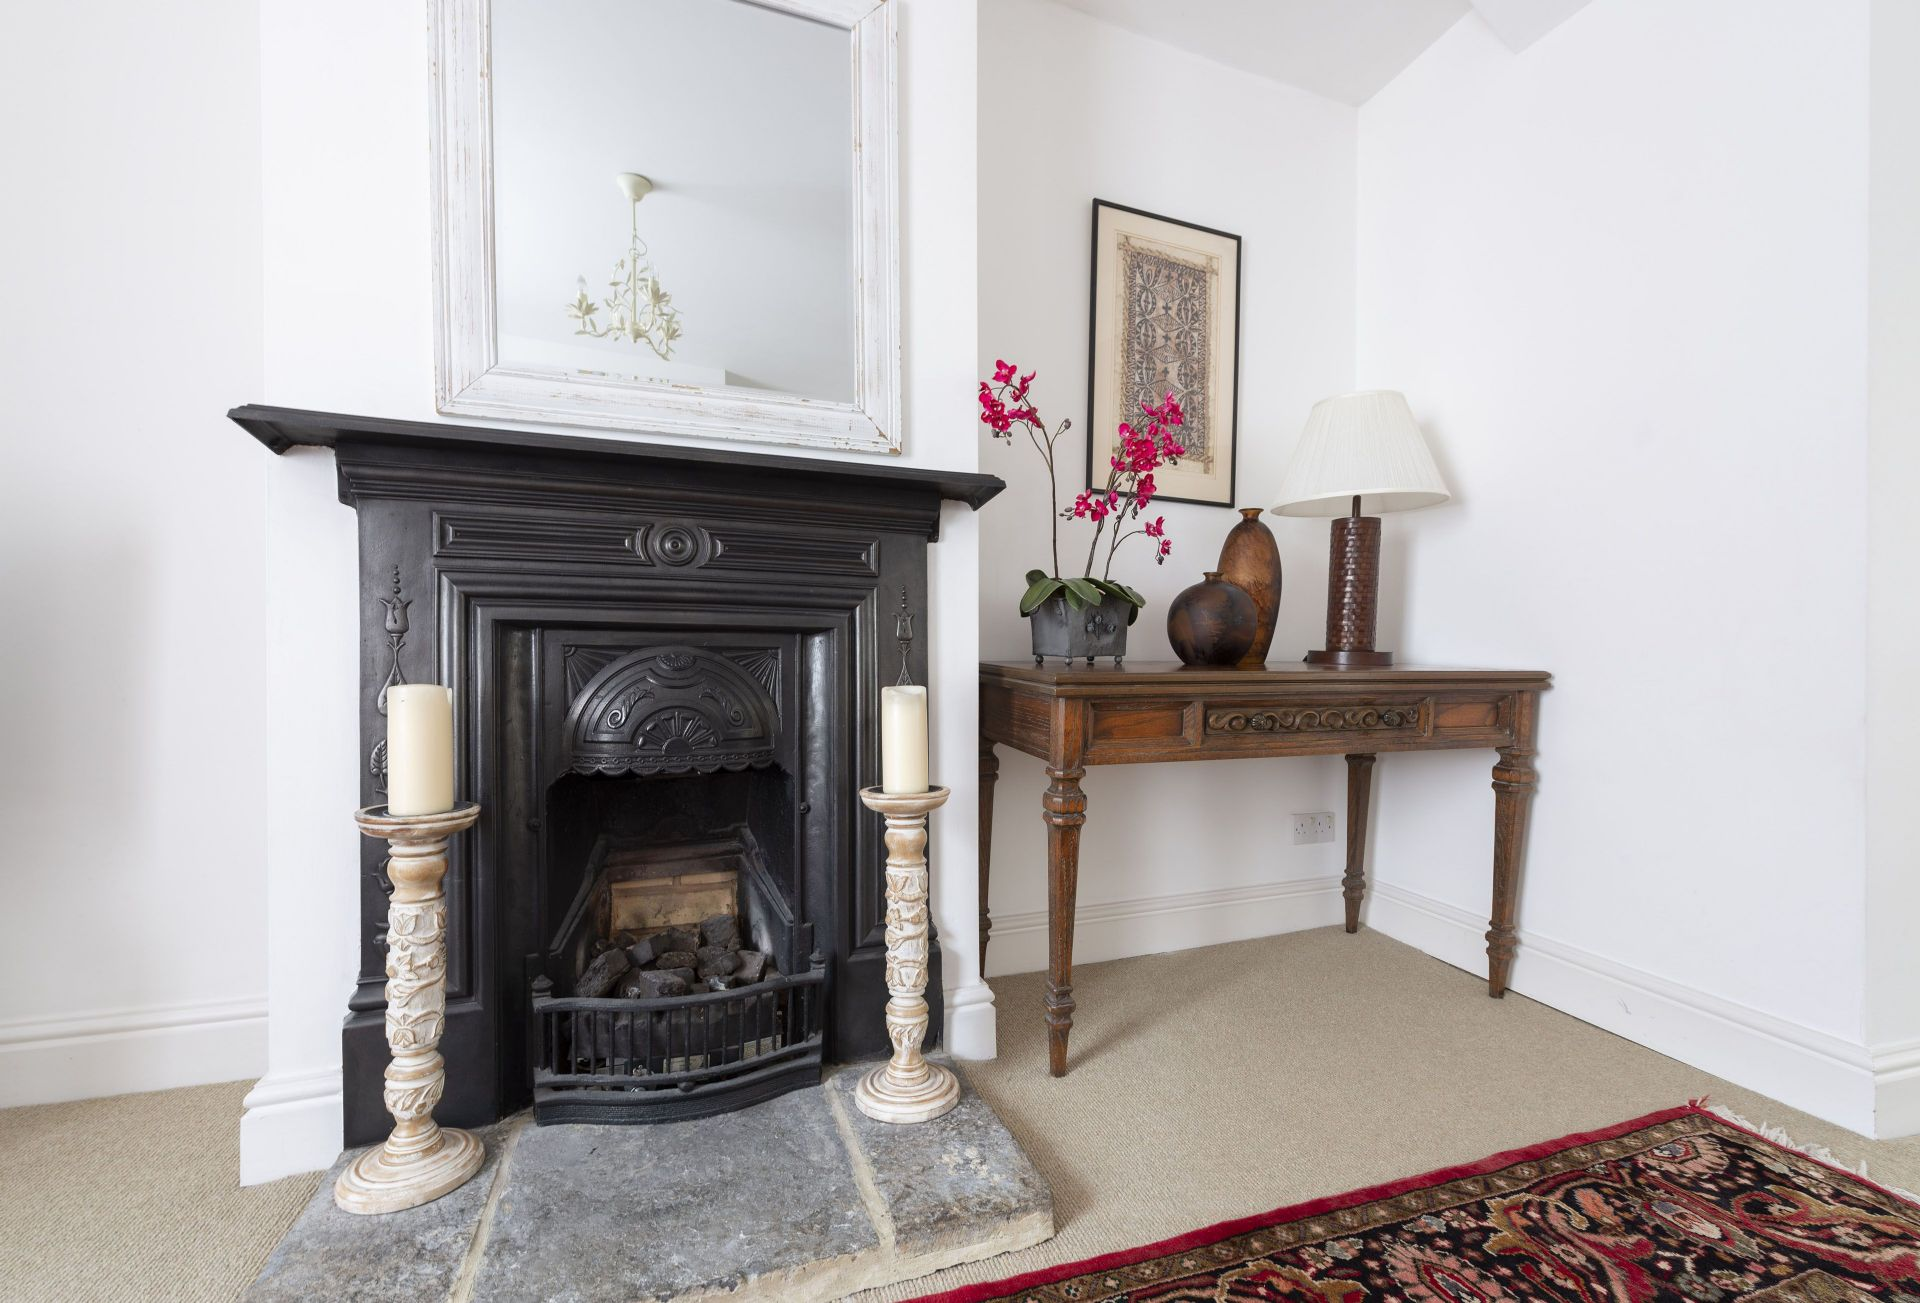 The Apartment at No.52 is located in Sherborne and surrounding villages